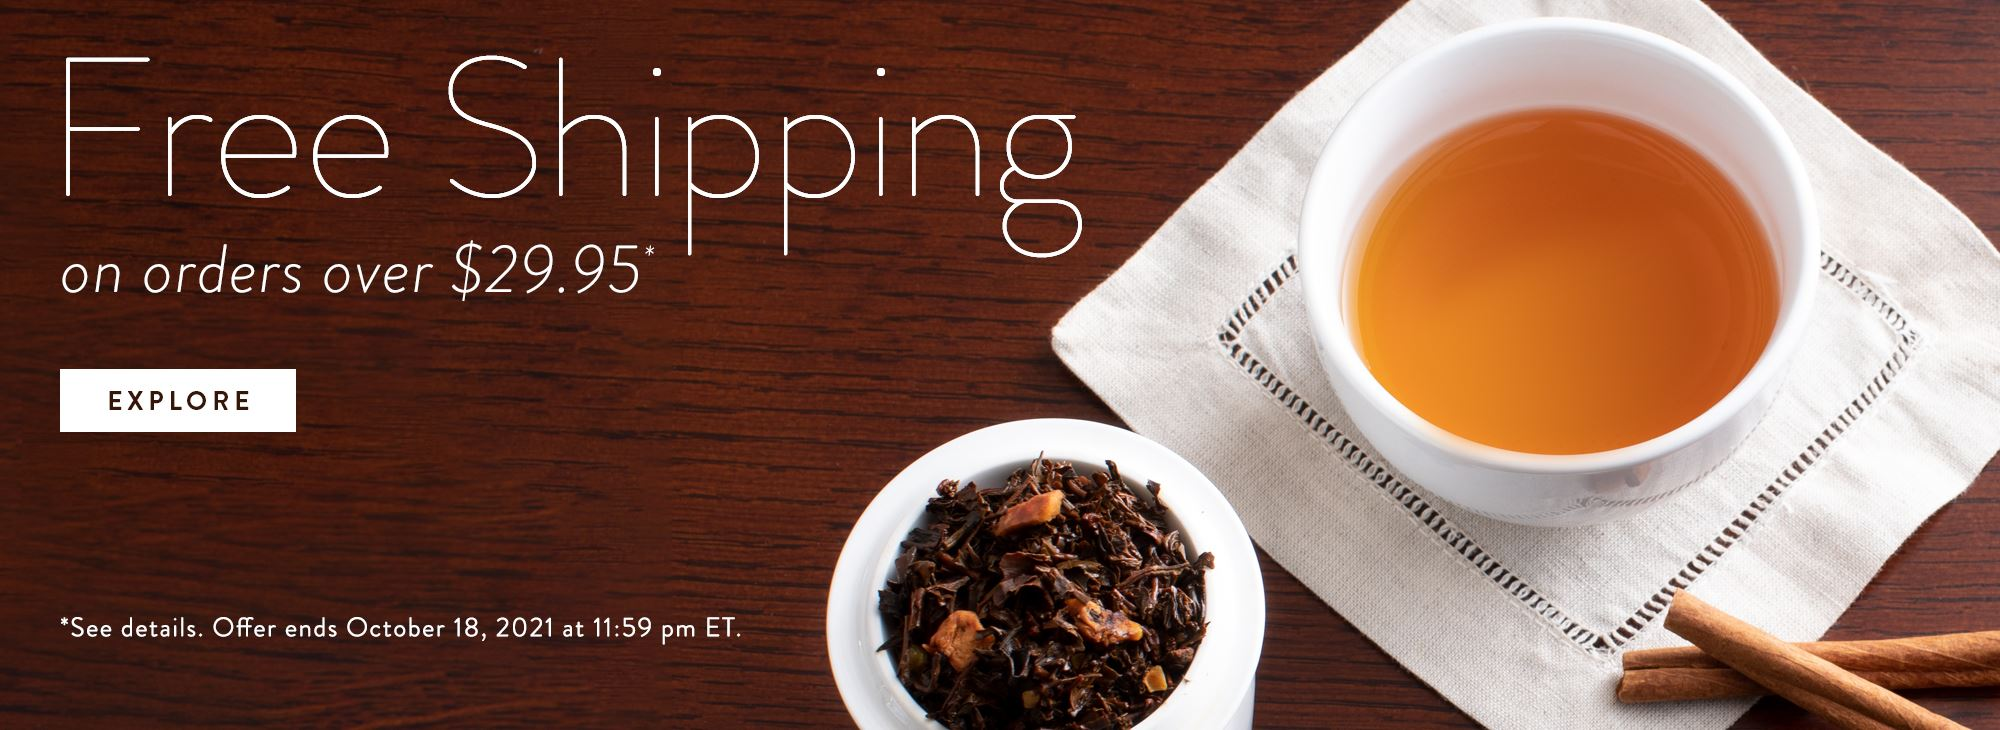 Free Shipping on Orders over $29.95